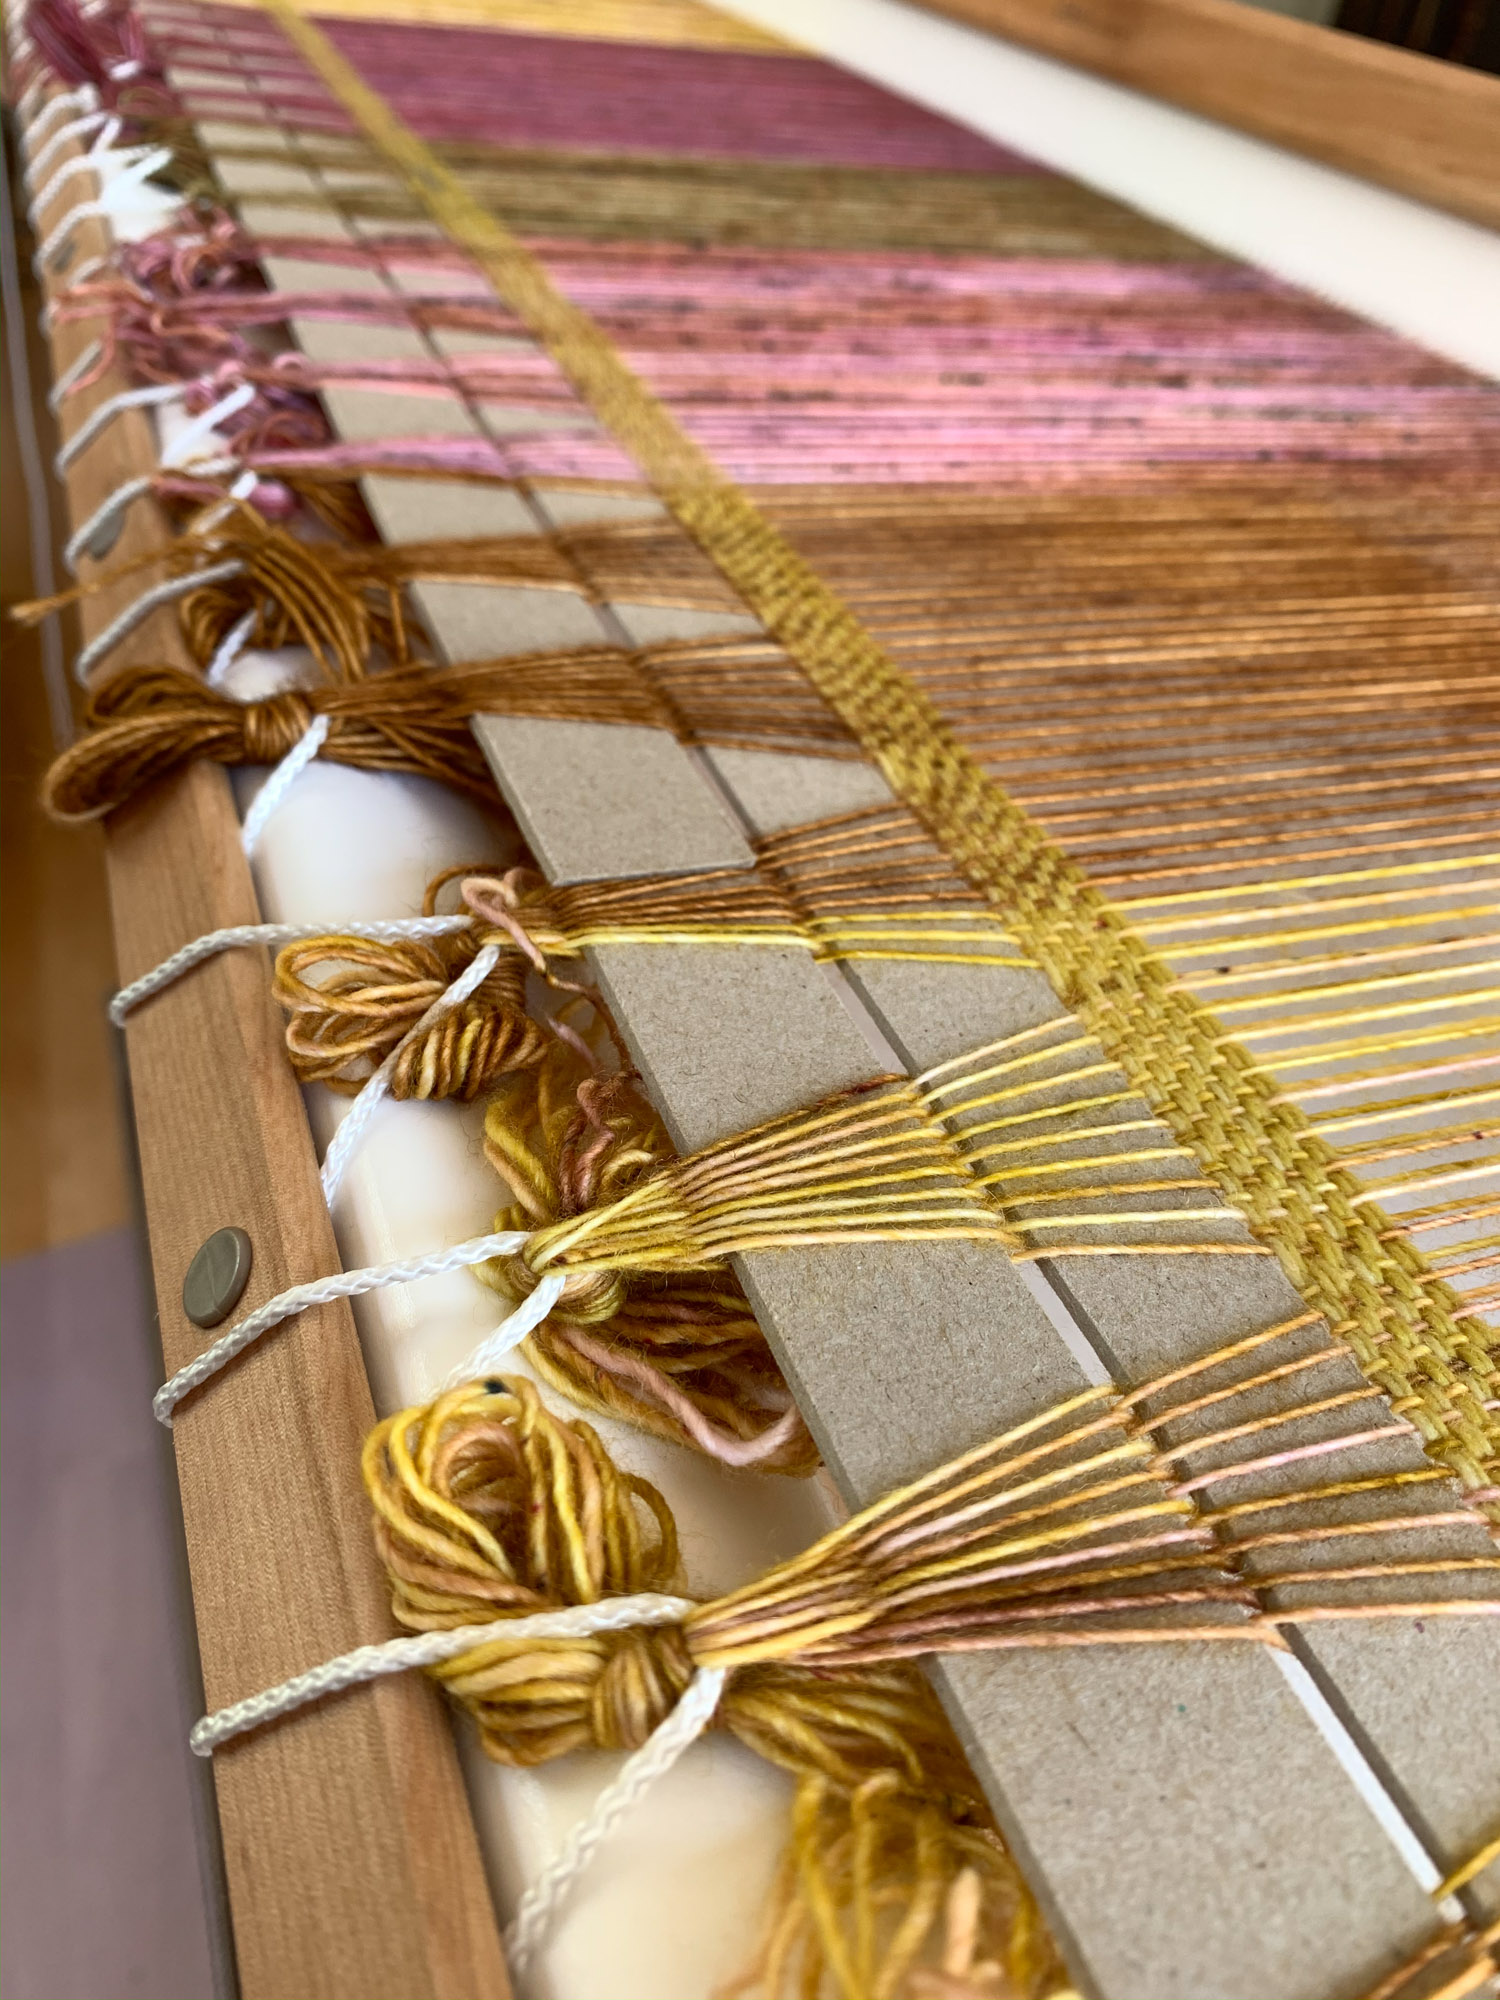 Lashing warp on to Rigid heddle loom